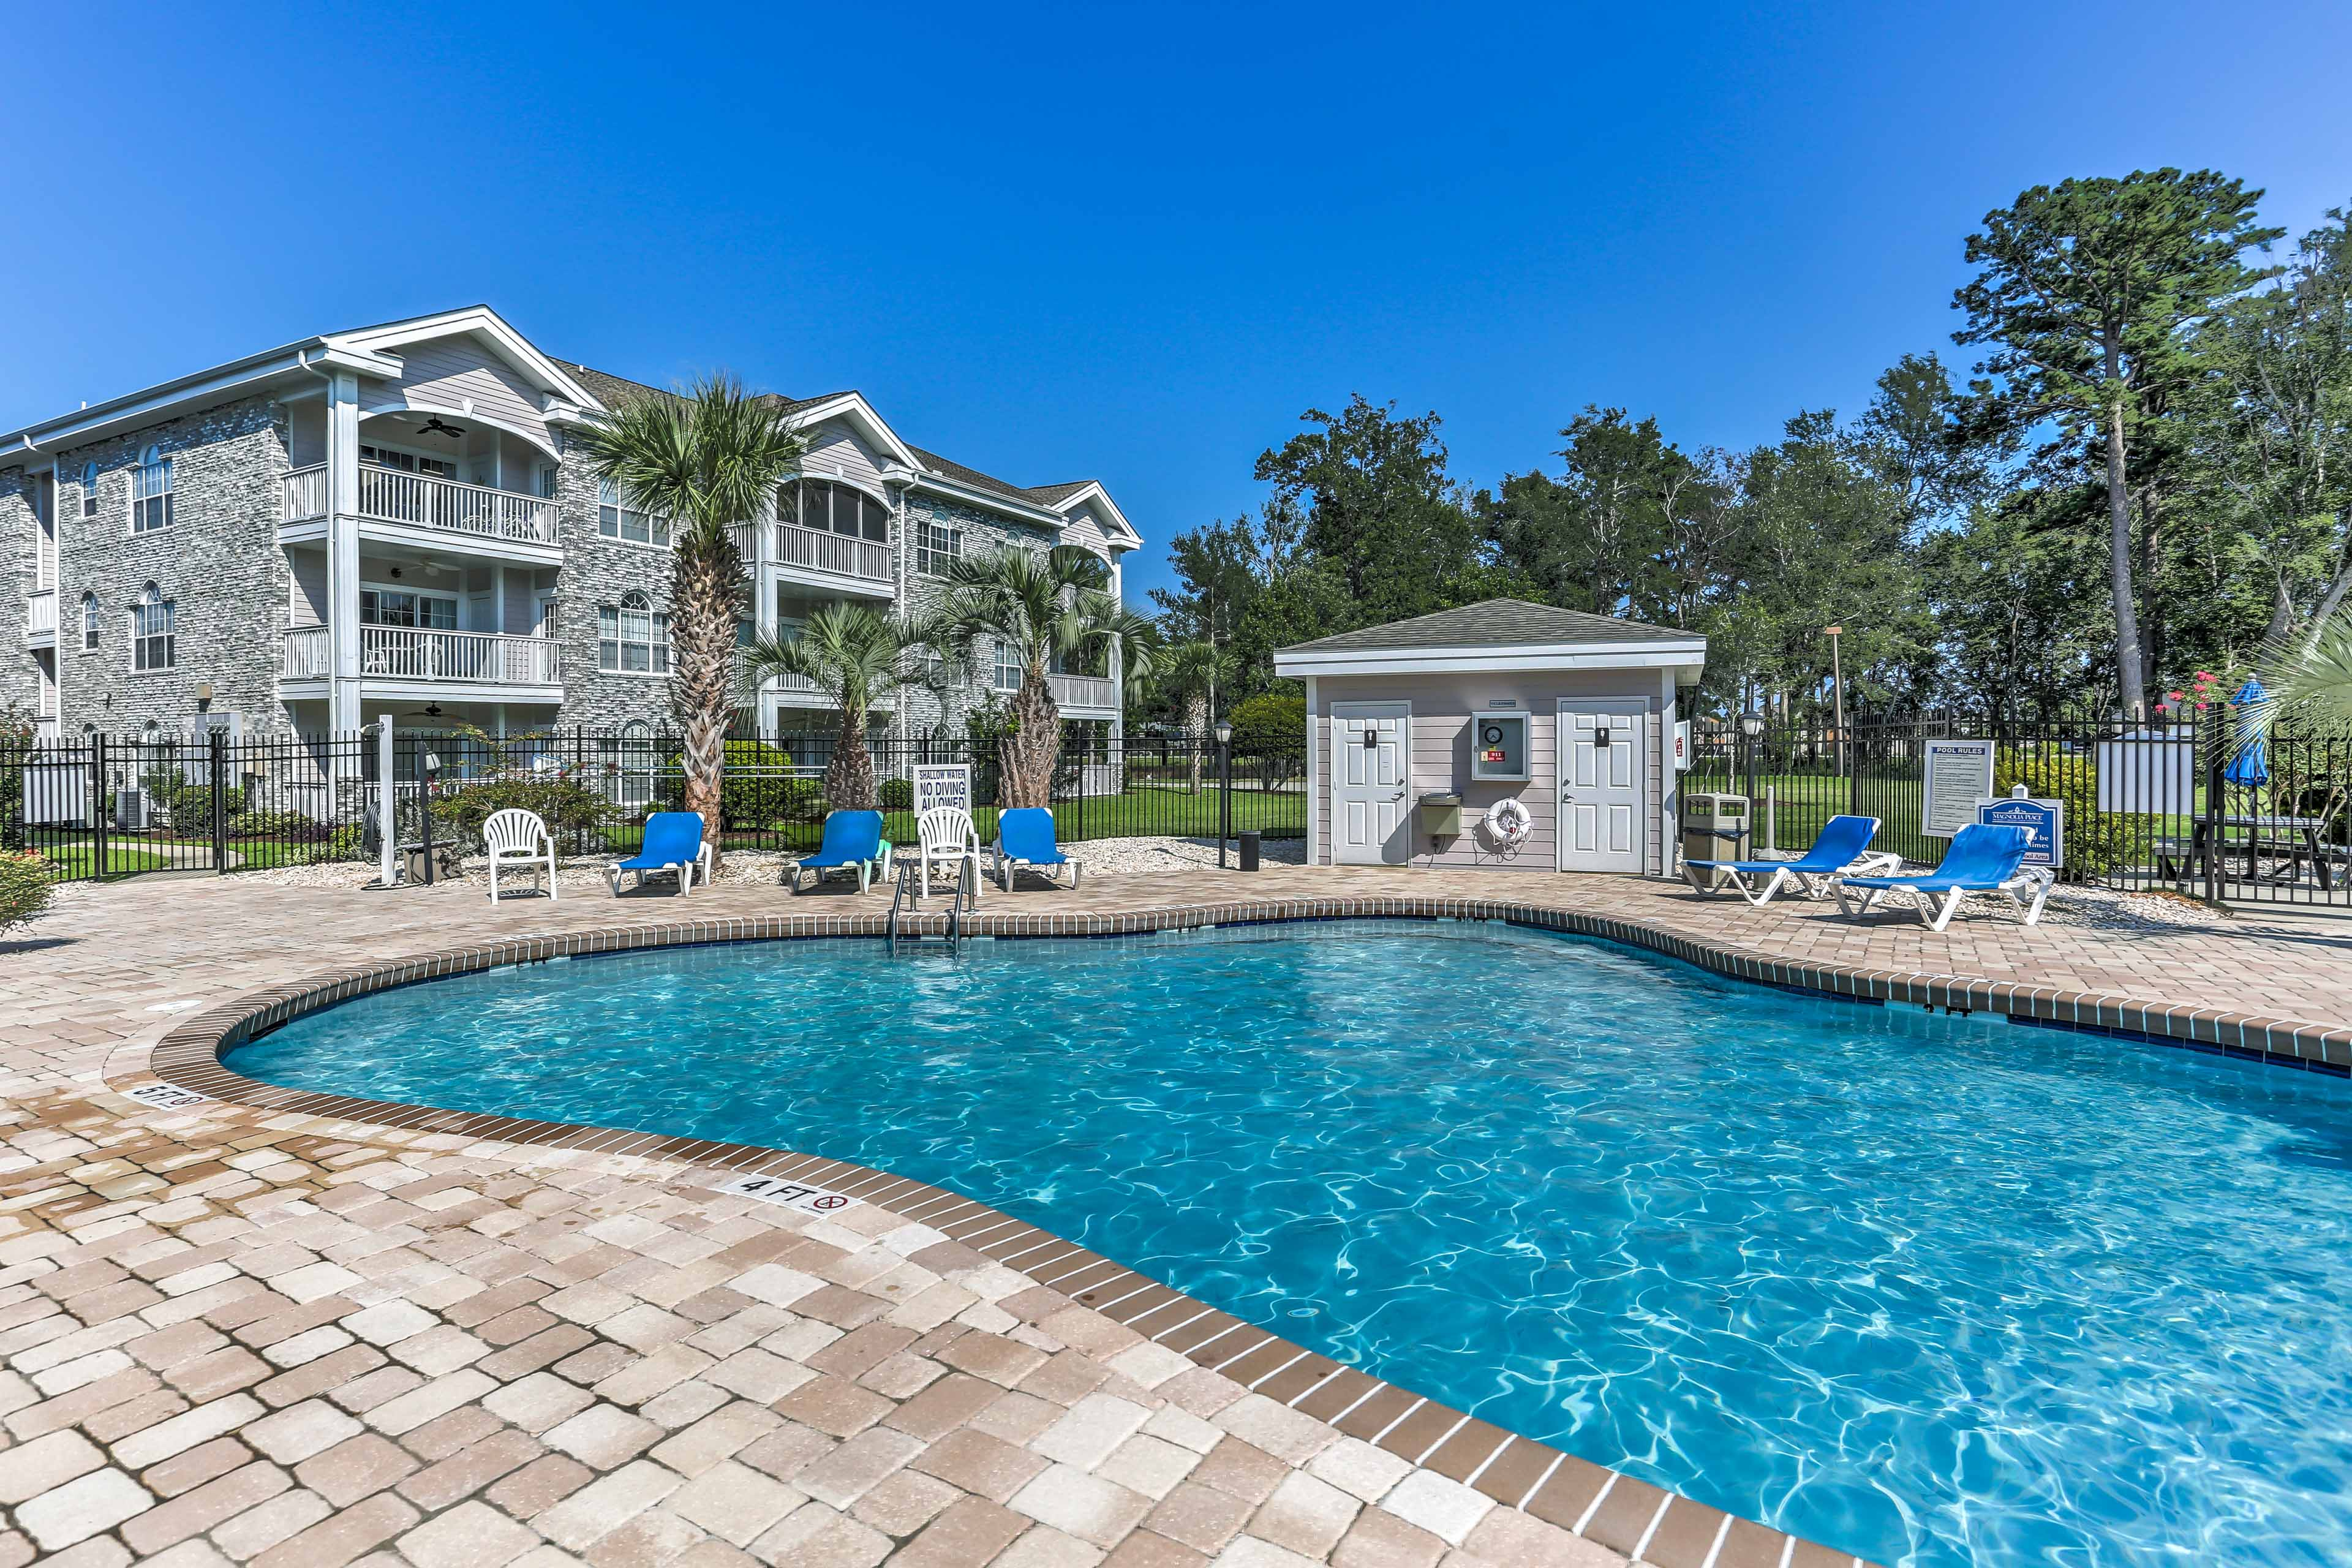 The 2-bedroom, 2-bath unit affords access to a lovely pool.